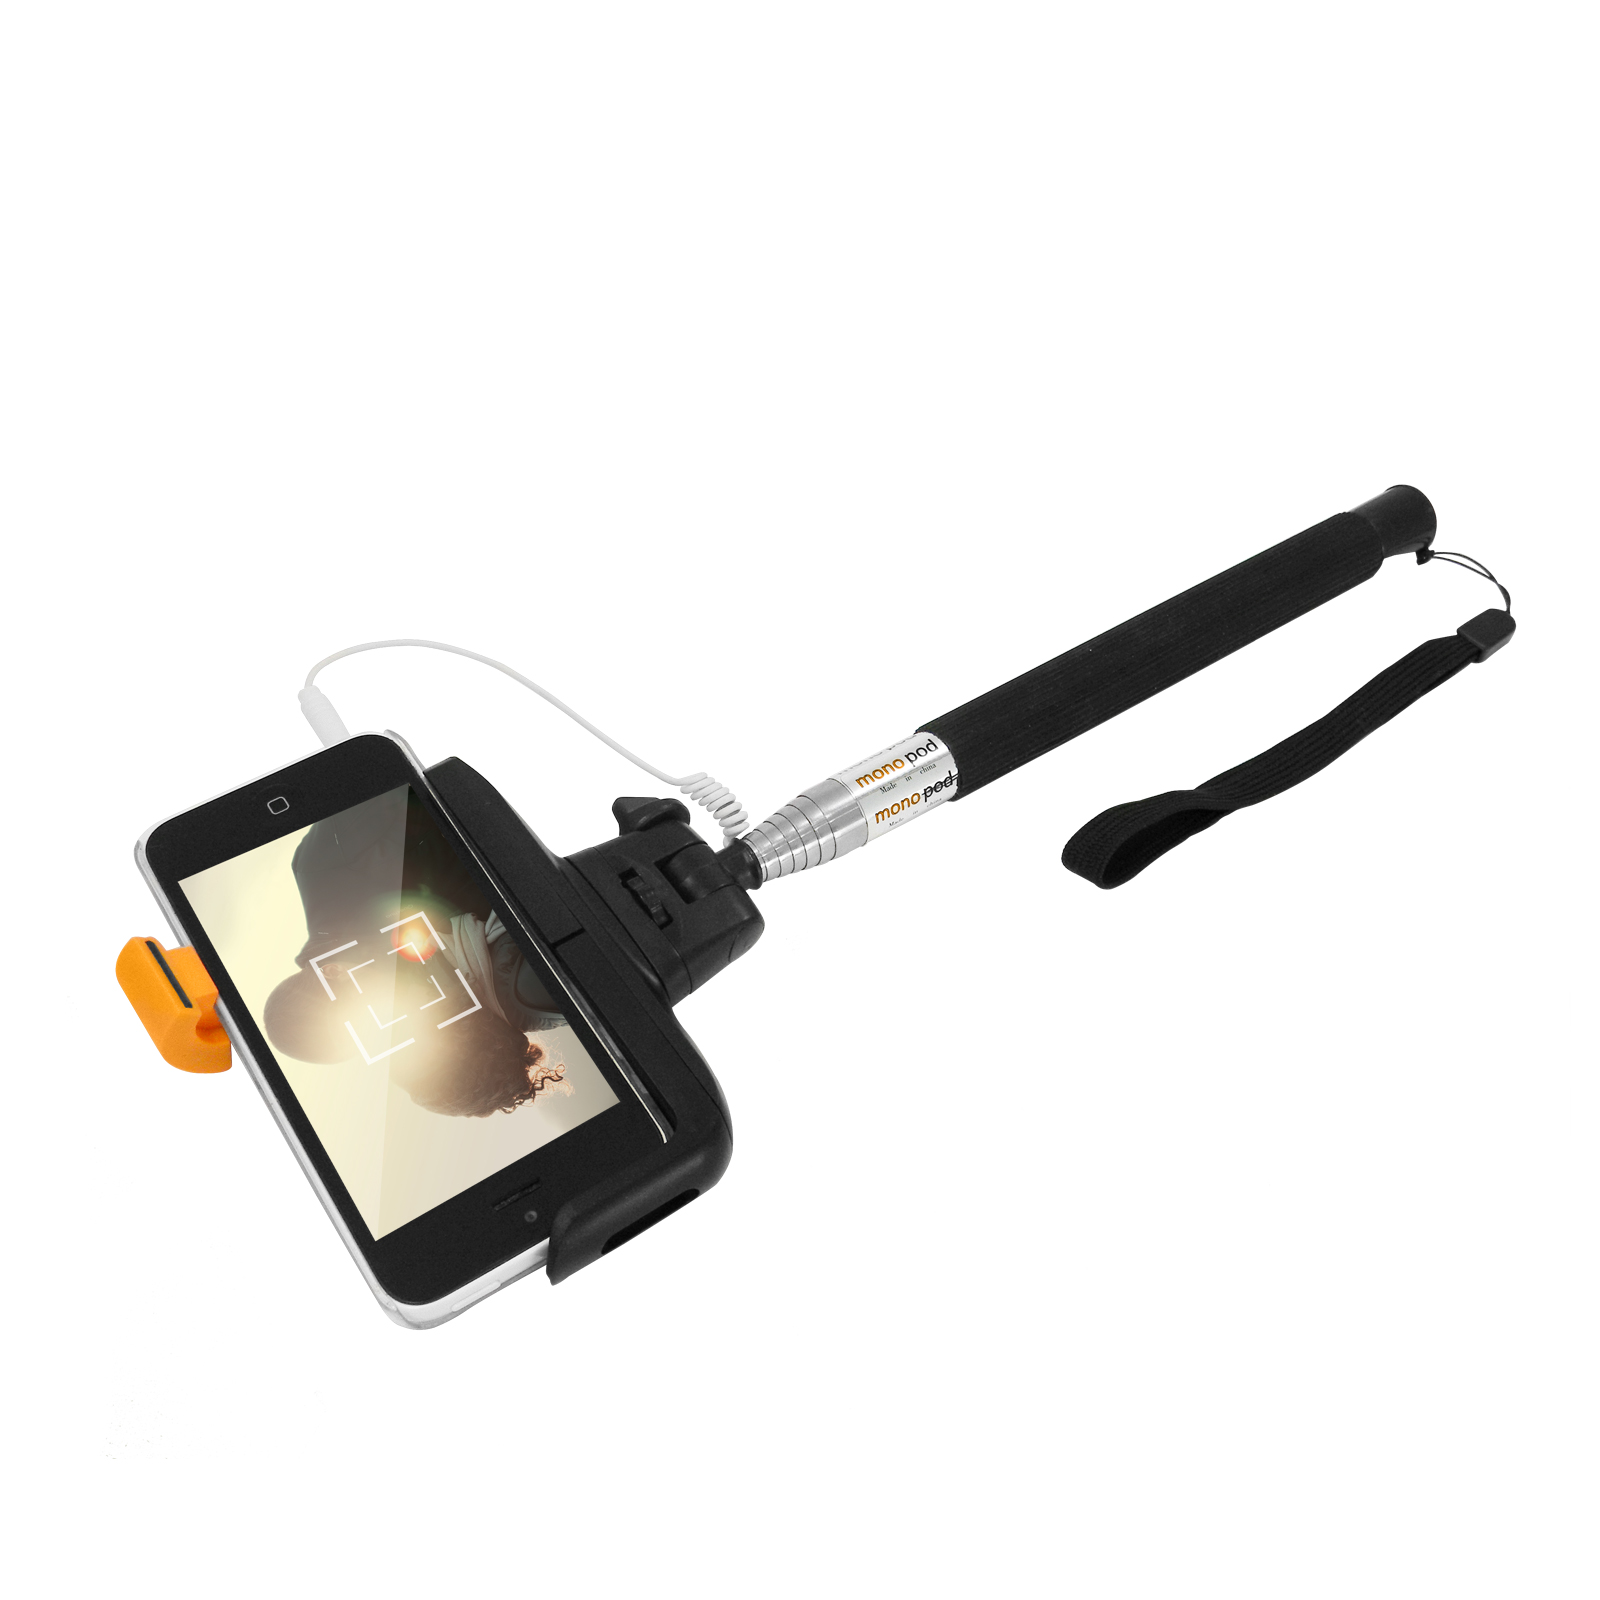 selfie stick monopod teleskop stange stativ smartphone iphone ios android eaxus ebay. Black Bedroom Furniture Sets. Home Design Ideas